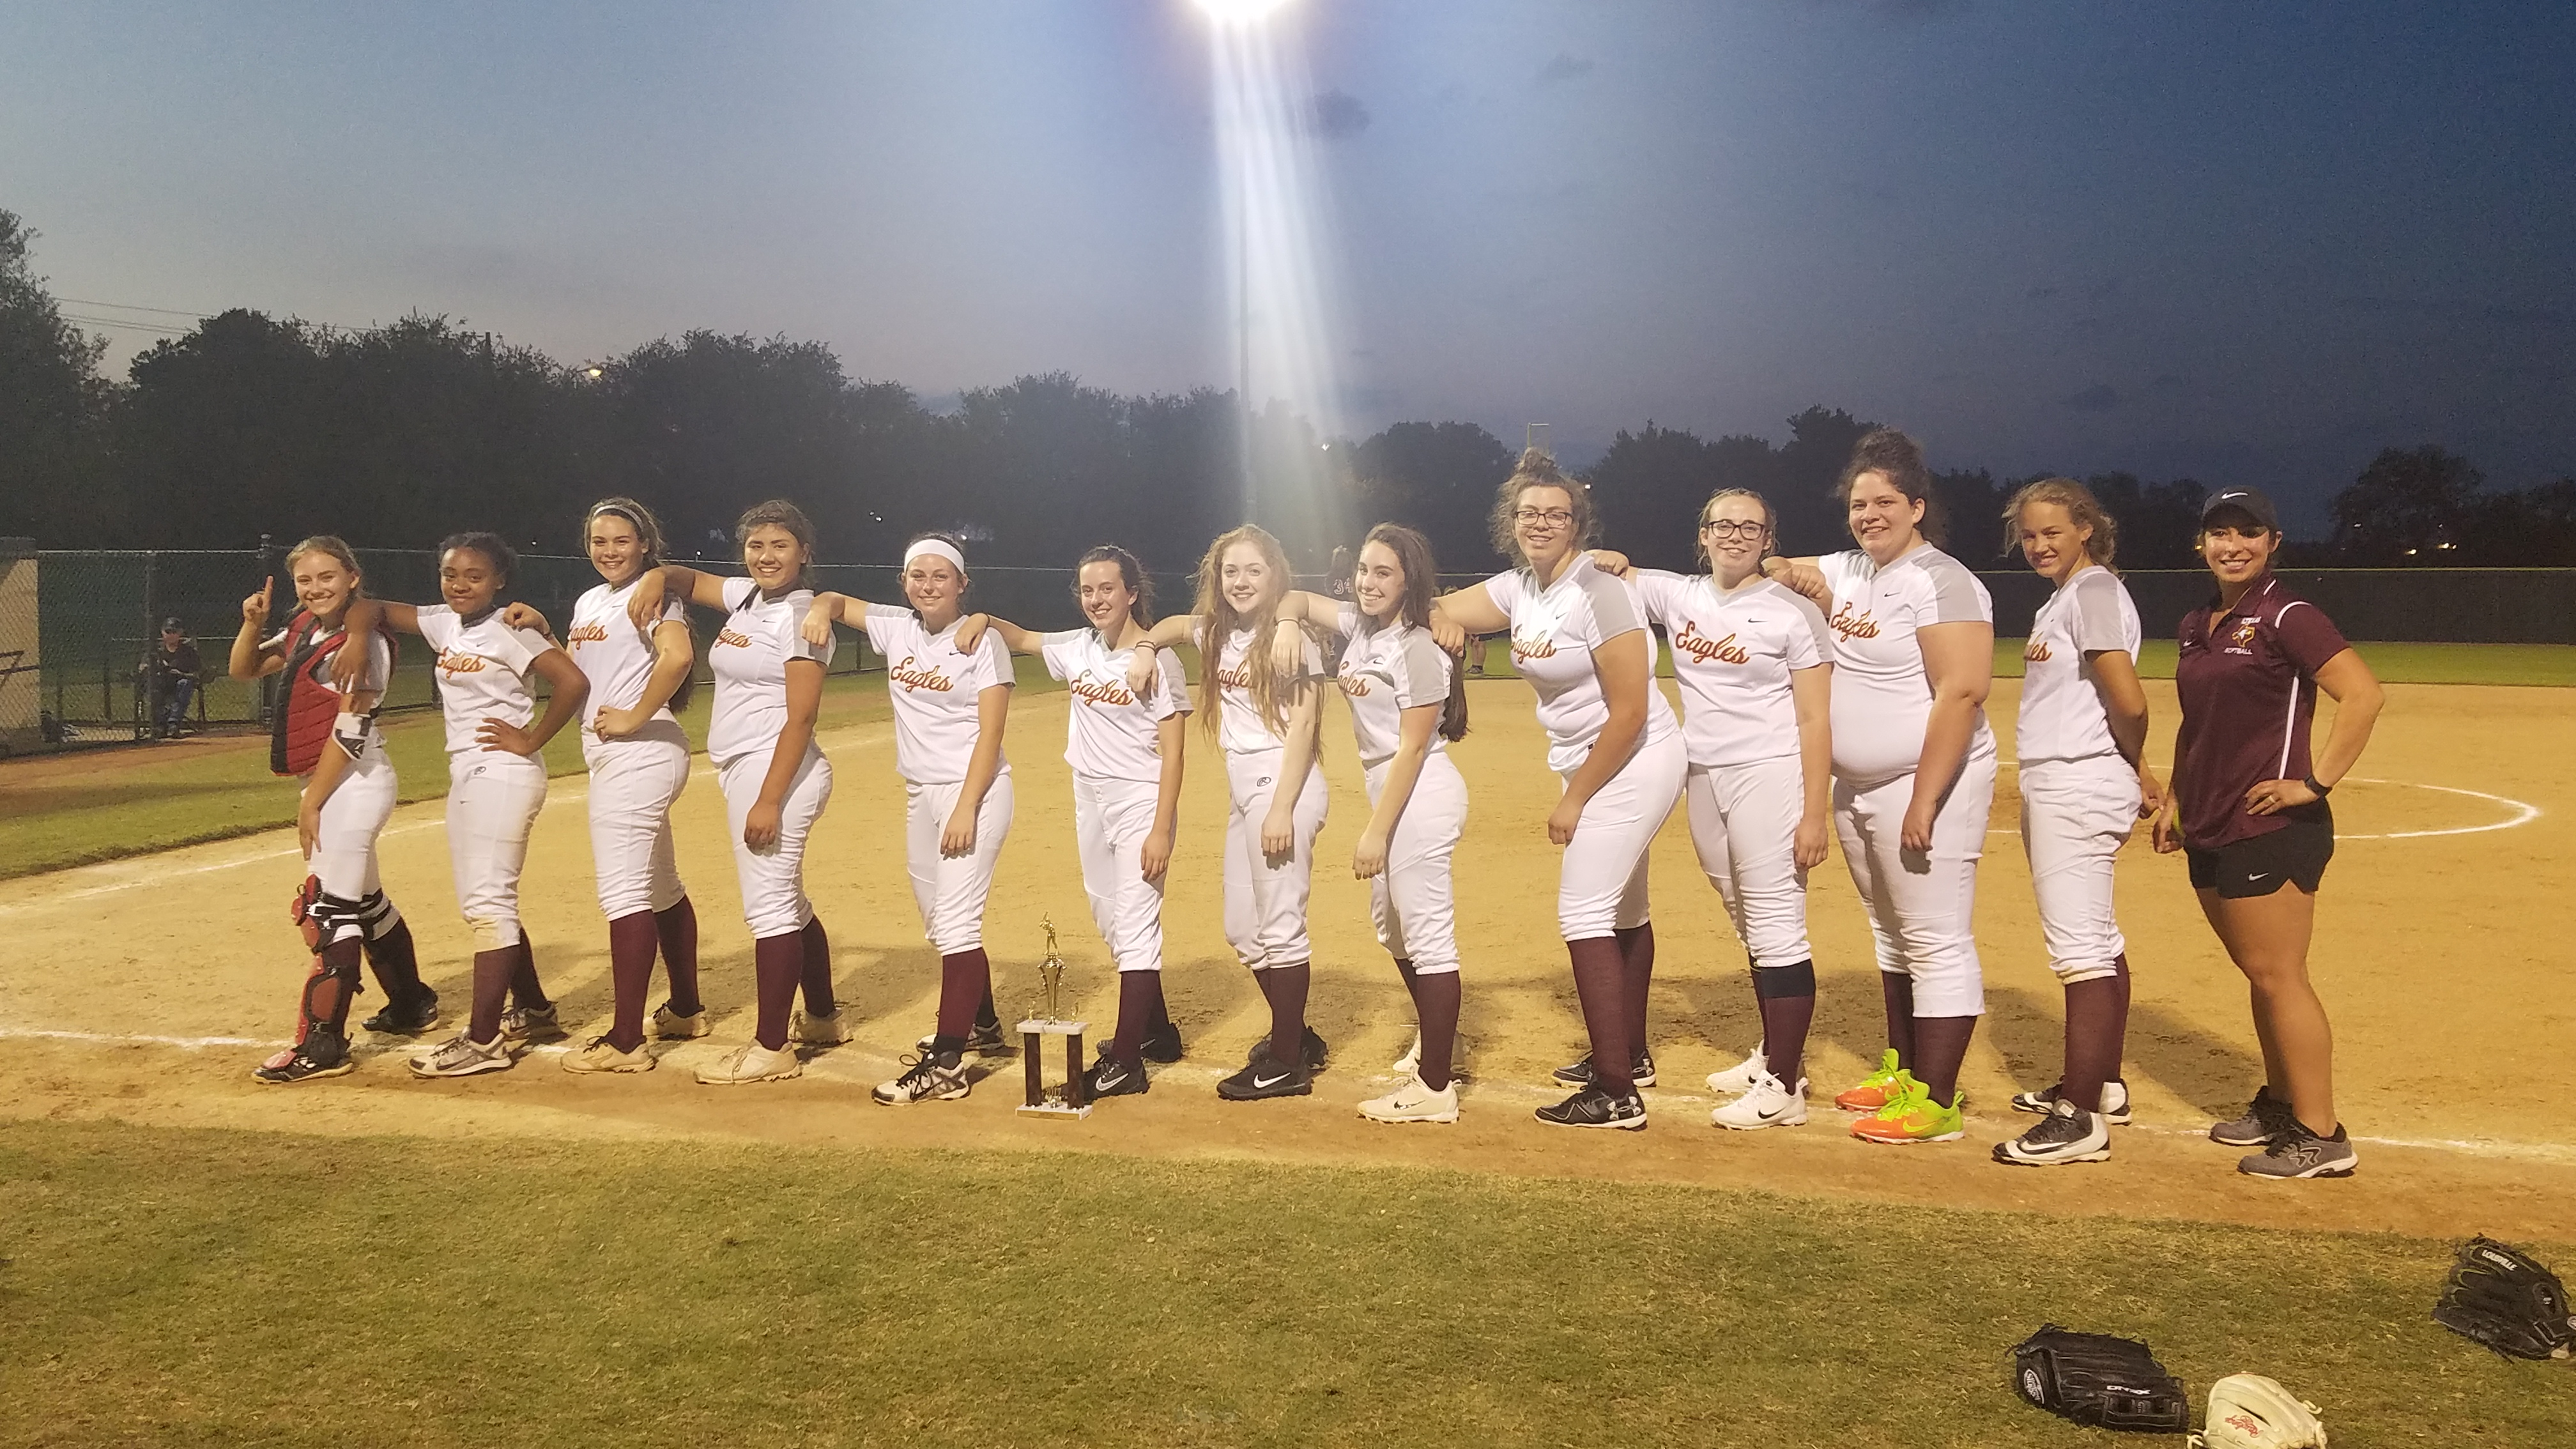 North richland hills softball